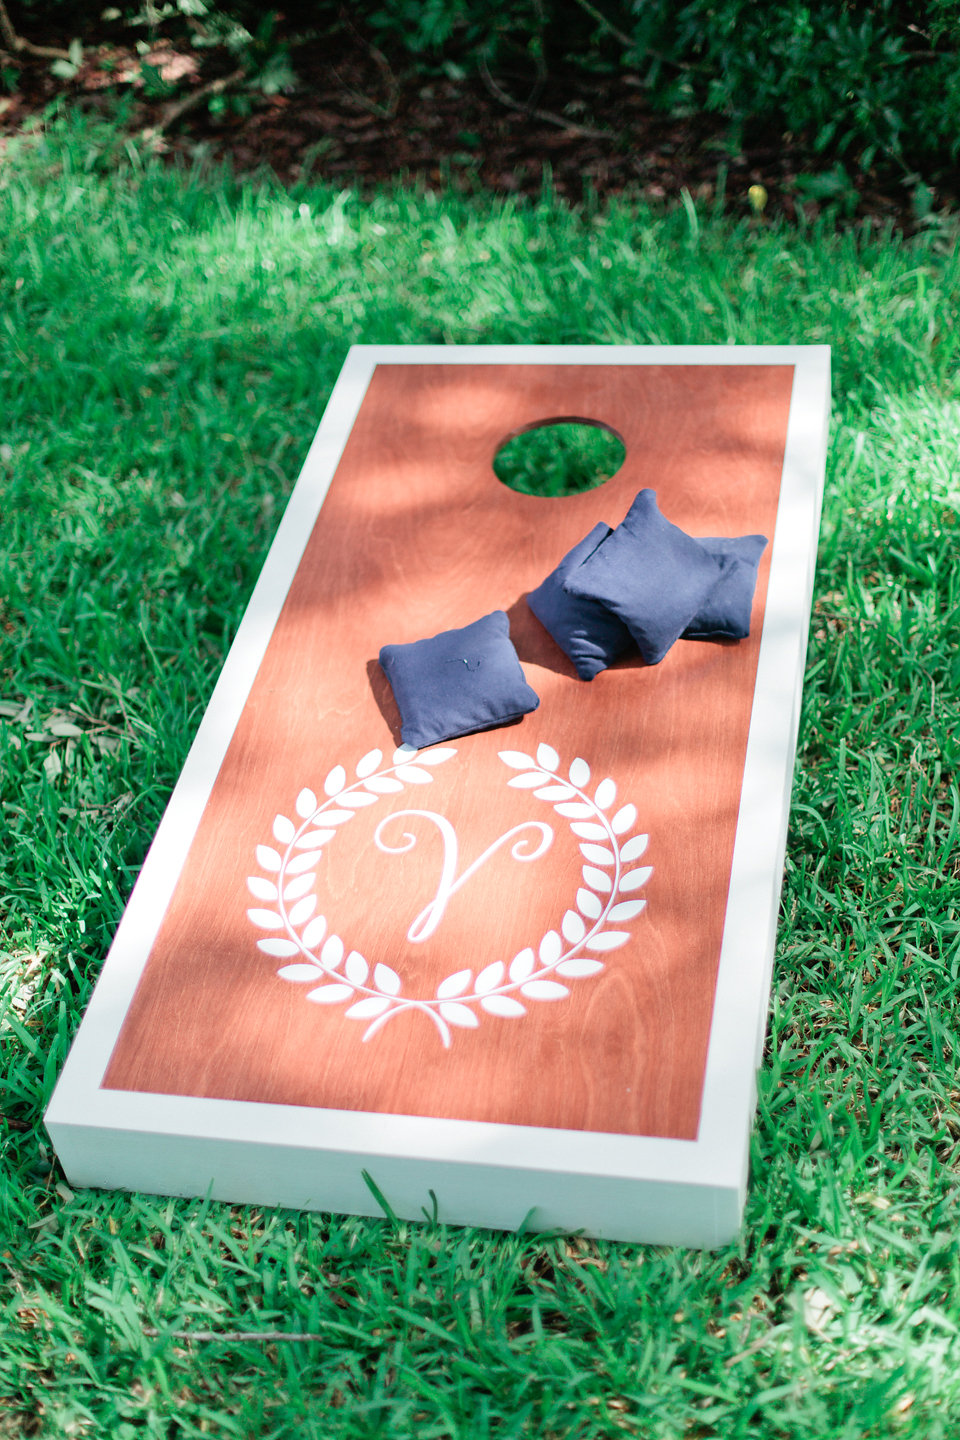 Guests enjoyed lawn games during the cocktail hour, including these monogrammed corn hole boards.